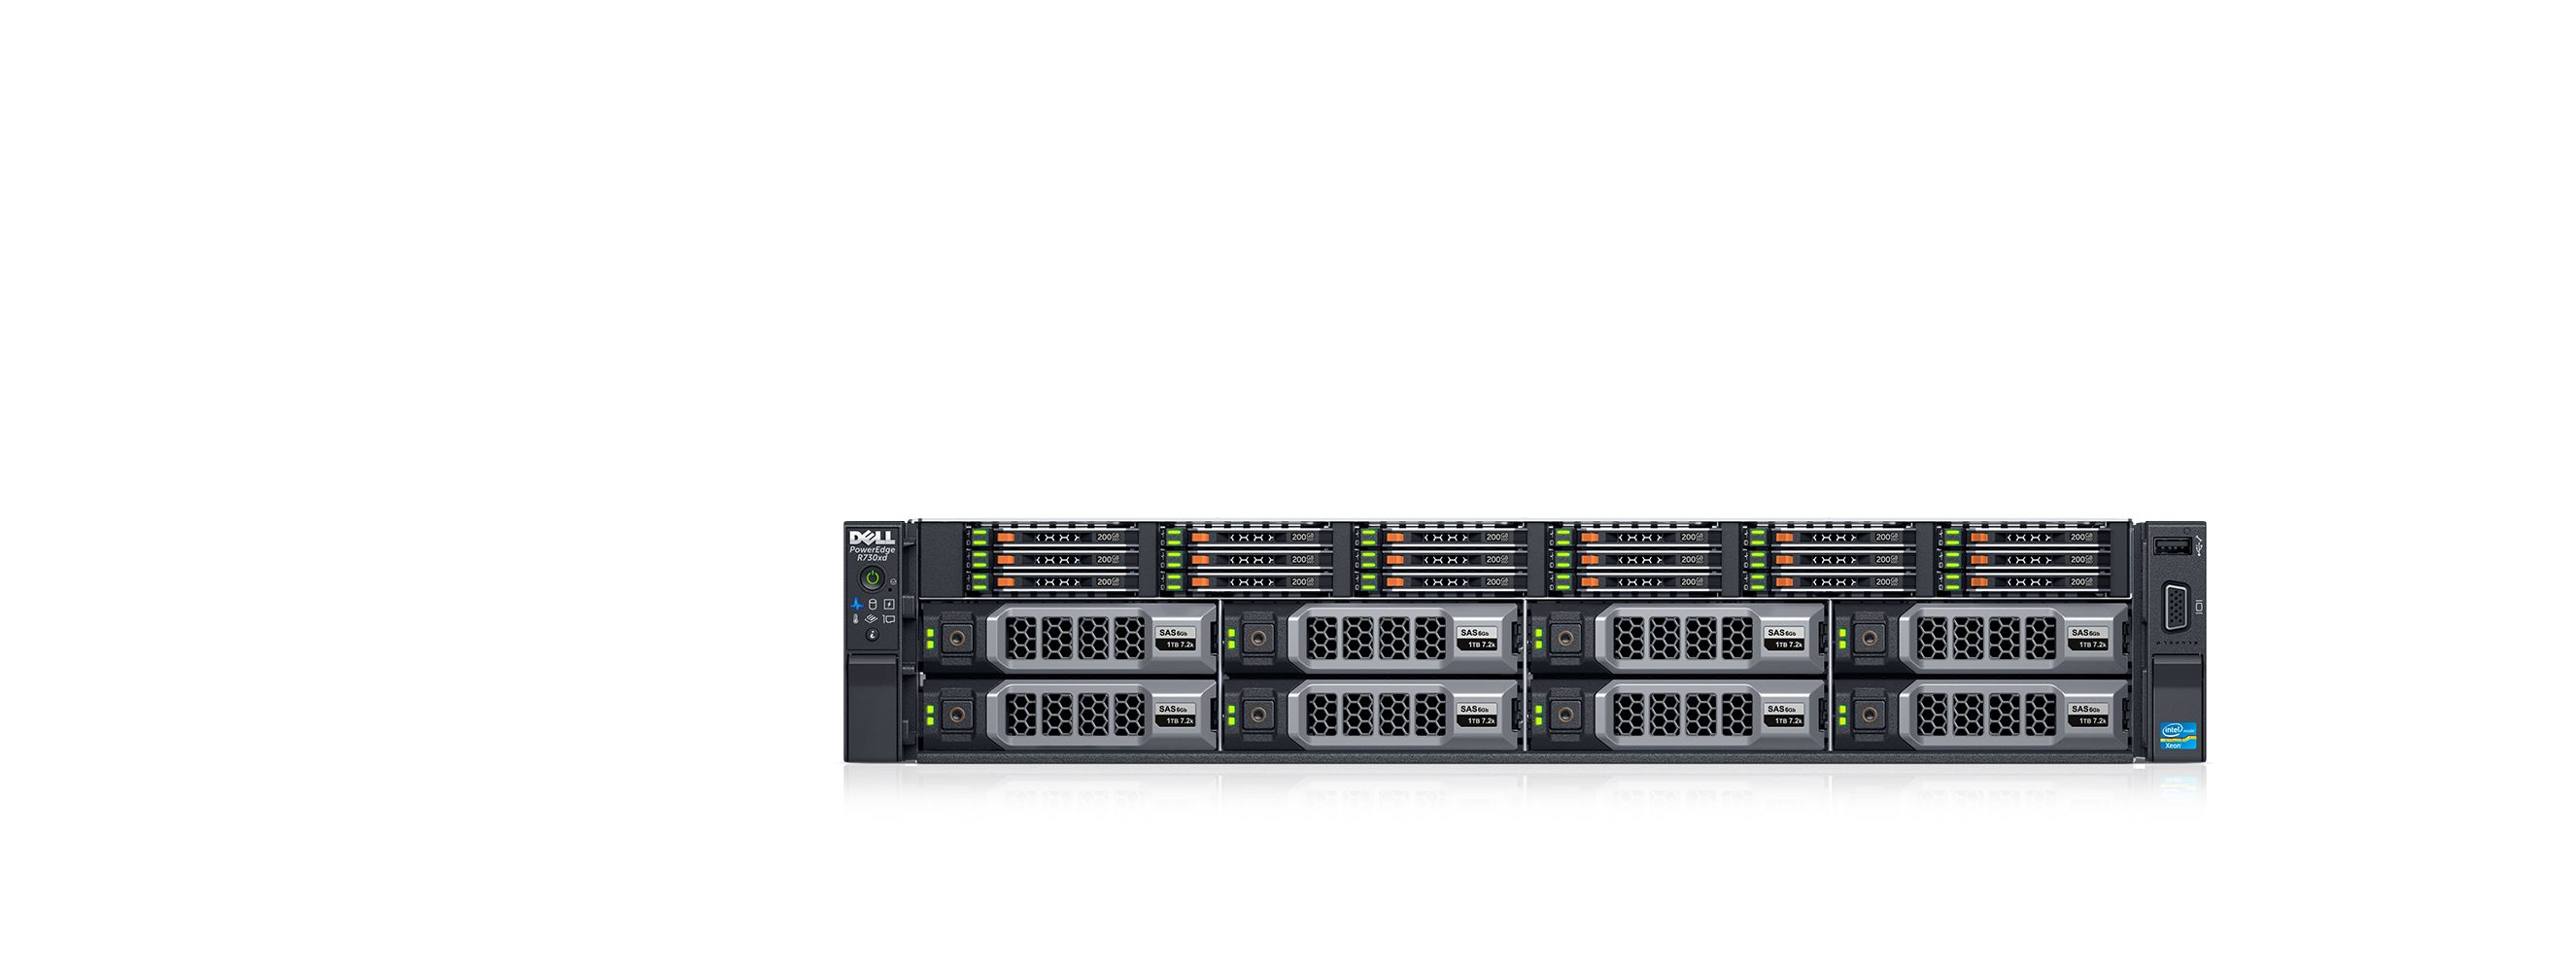 Dell PowerEdge R730 XD Server Chassis 3.5